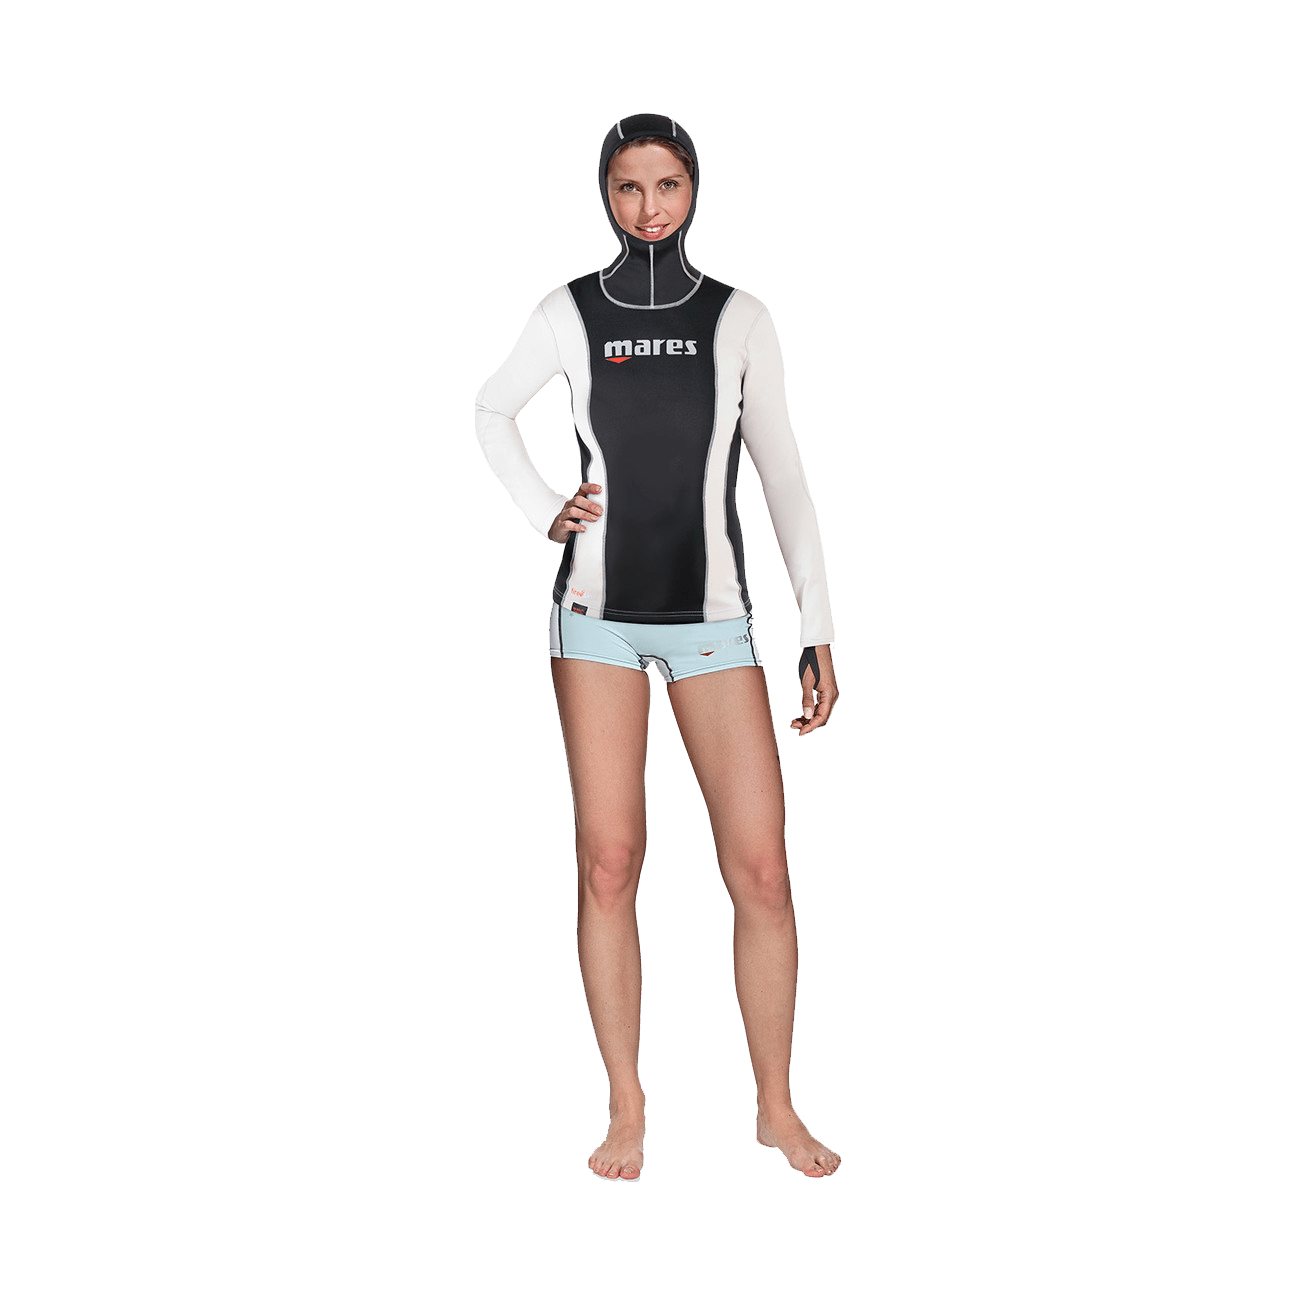 Mares Fire Skin Long Sleeve With Hood She Dives | Mares Rashguards | Mares Singapore